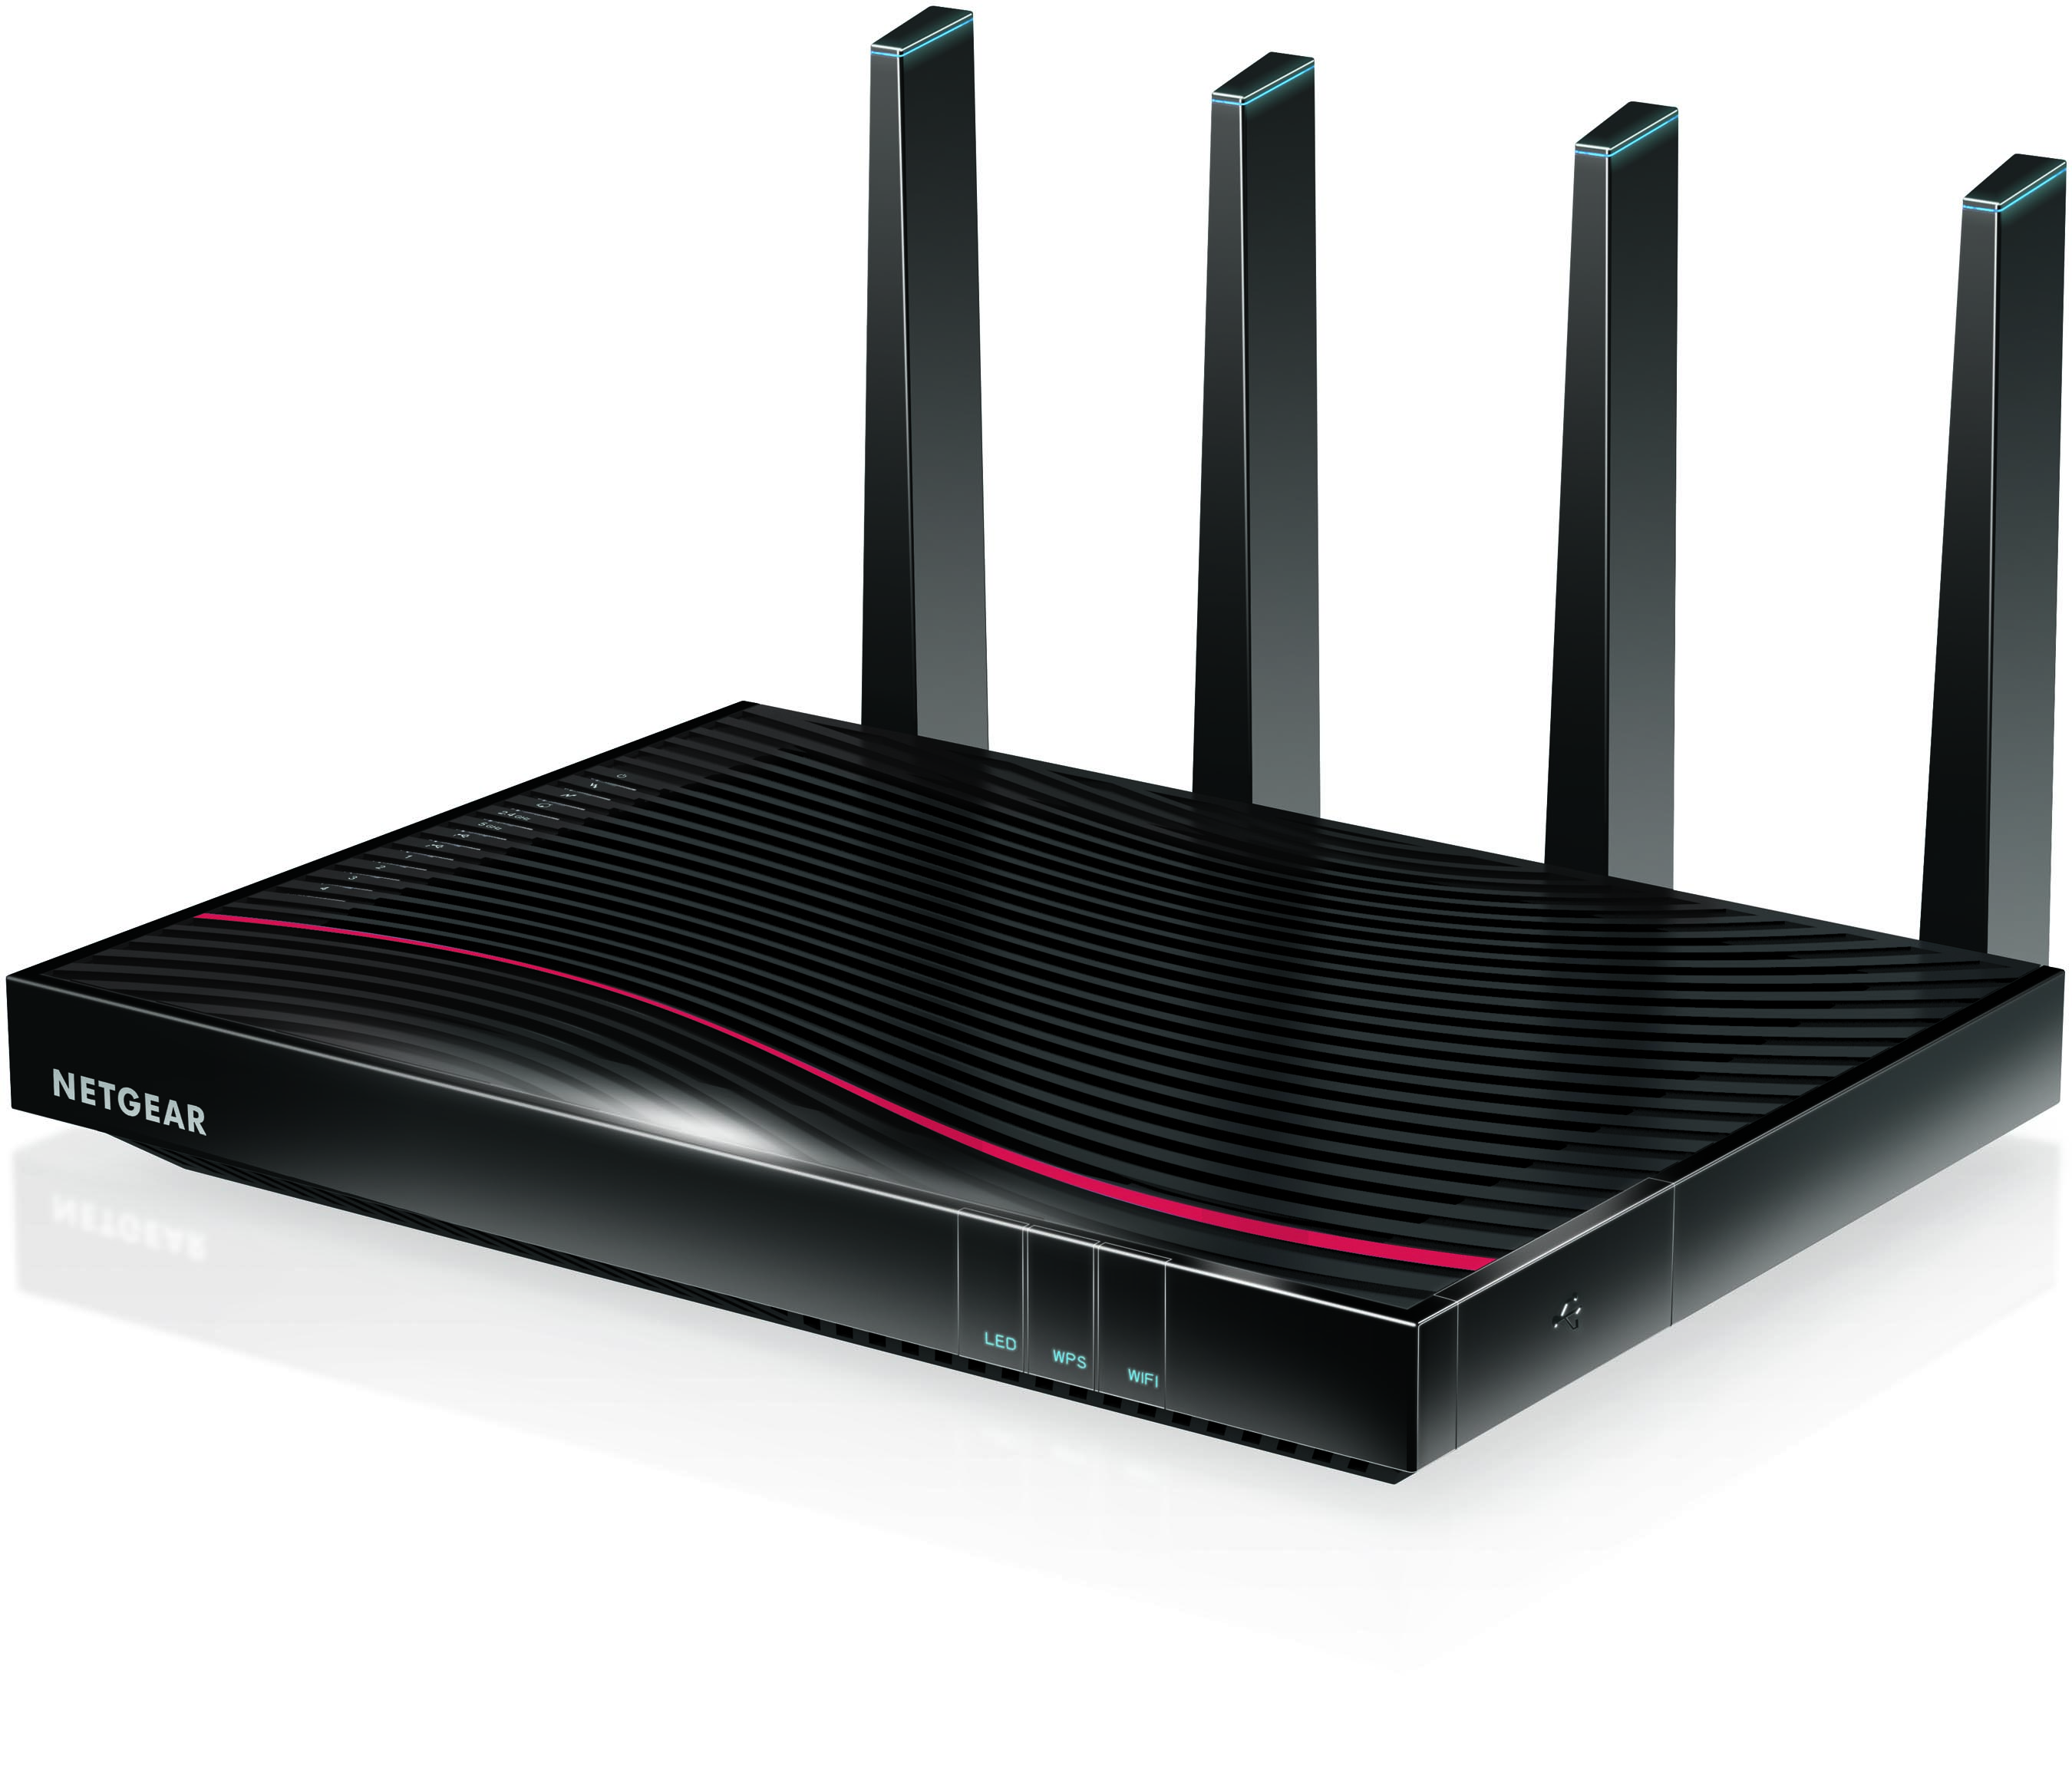 NETGEAR INTRODUCES THE WORLD\'S FIRST RETAIL DOCSIS 3.1 CABLE MODEM ...